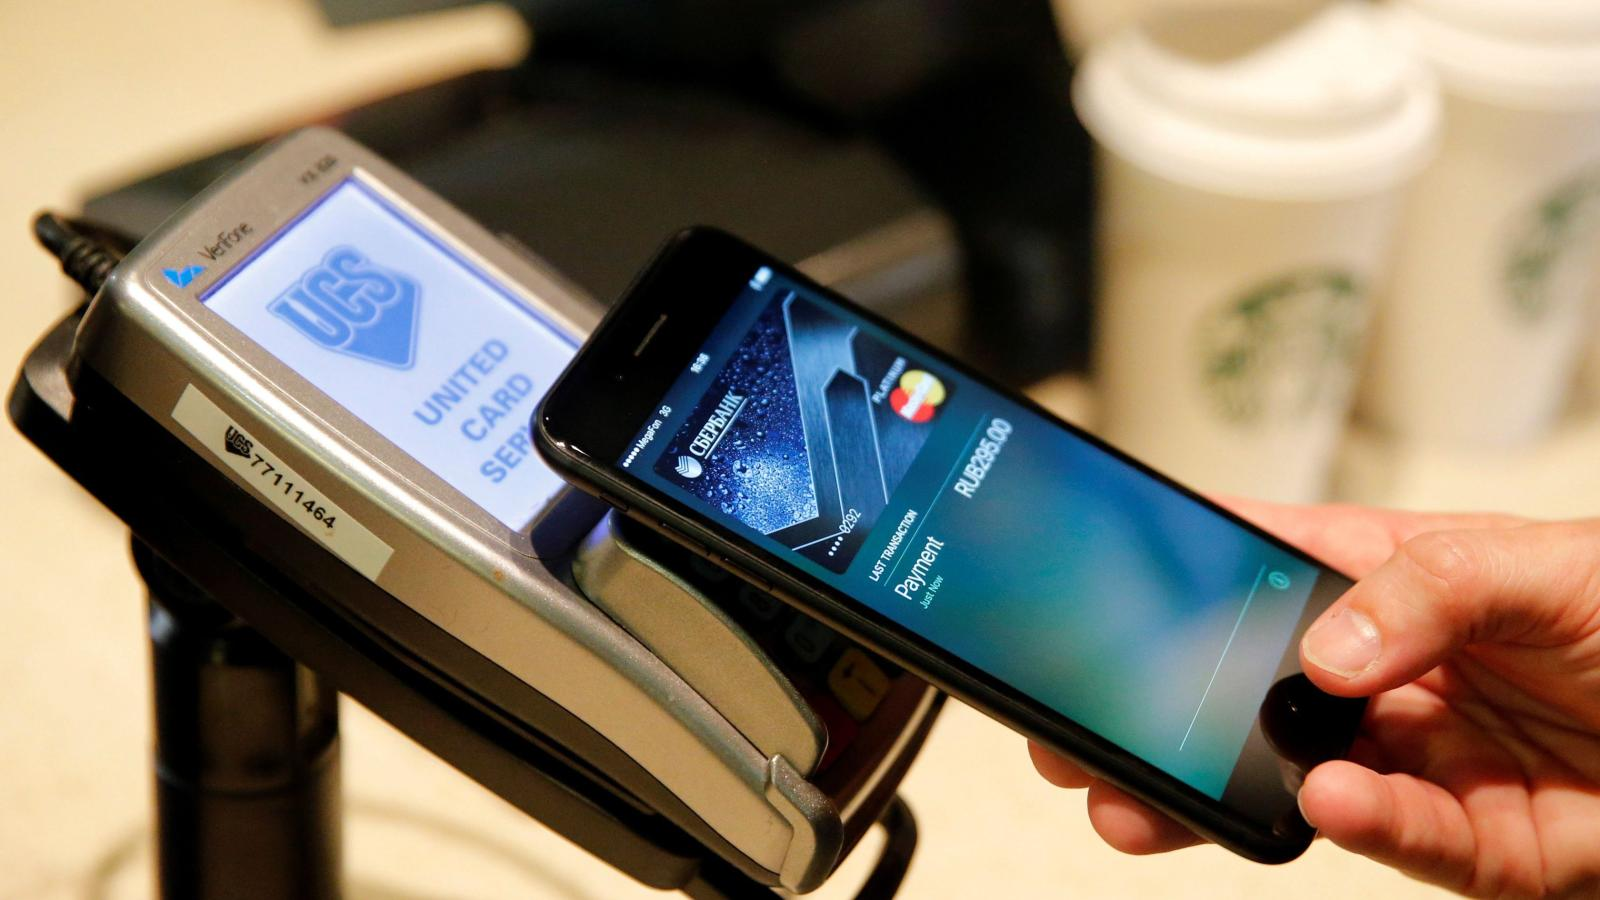 Apple will open its NFC chips for use in applications like